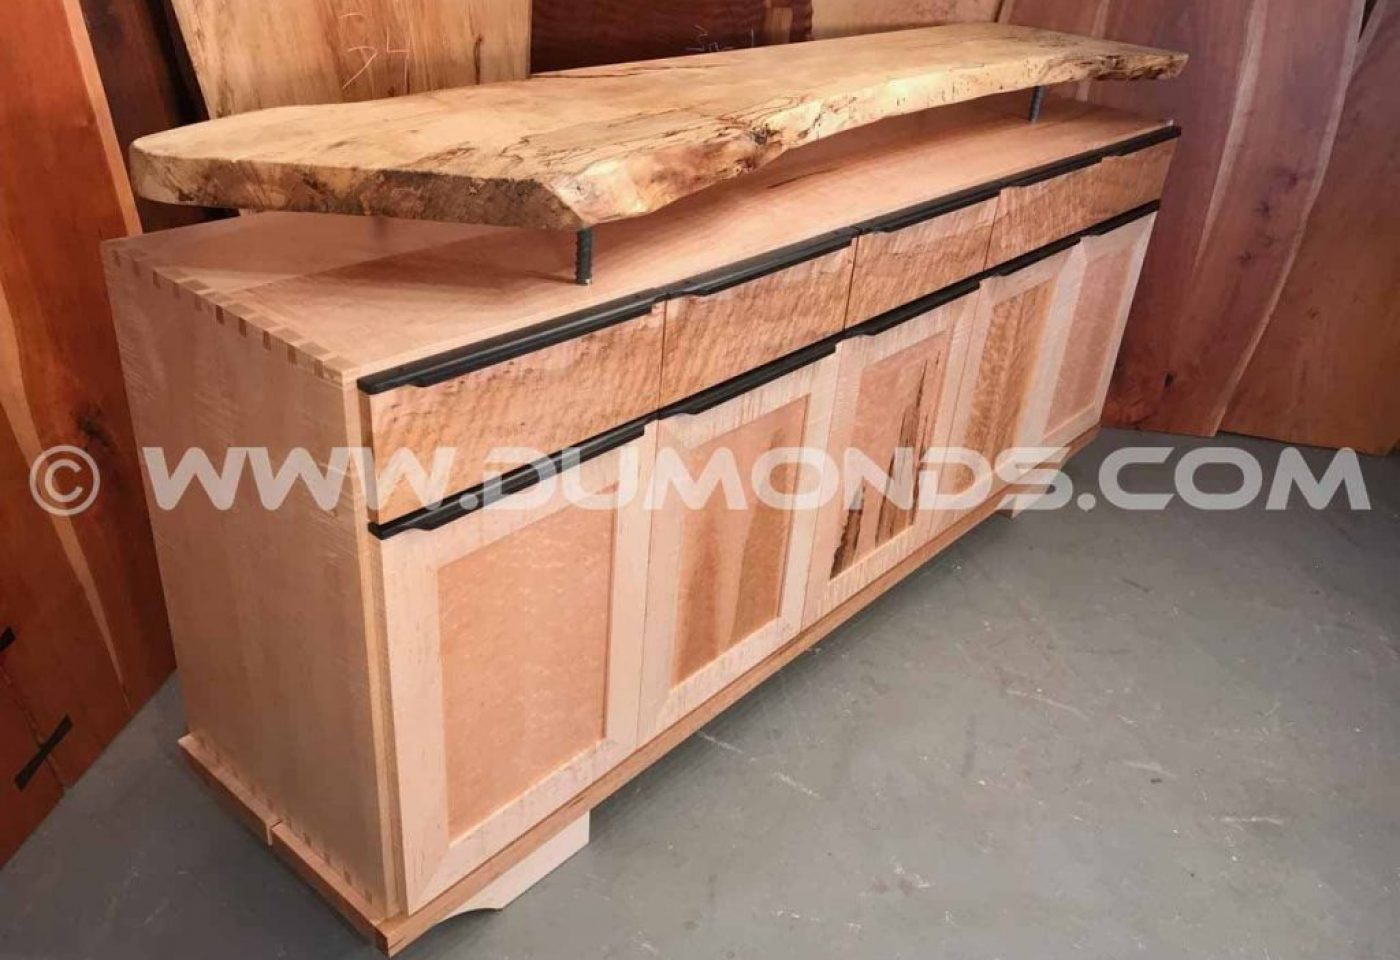 """THE KOONS""SPALTED MAPLE AND EBONY SIDEBOARD"